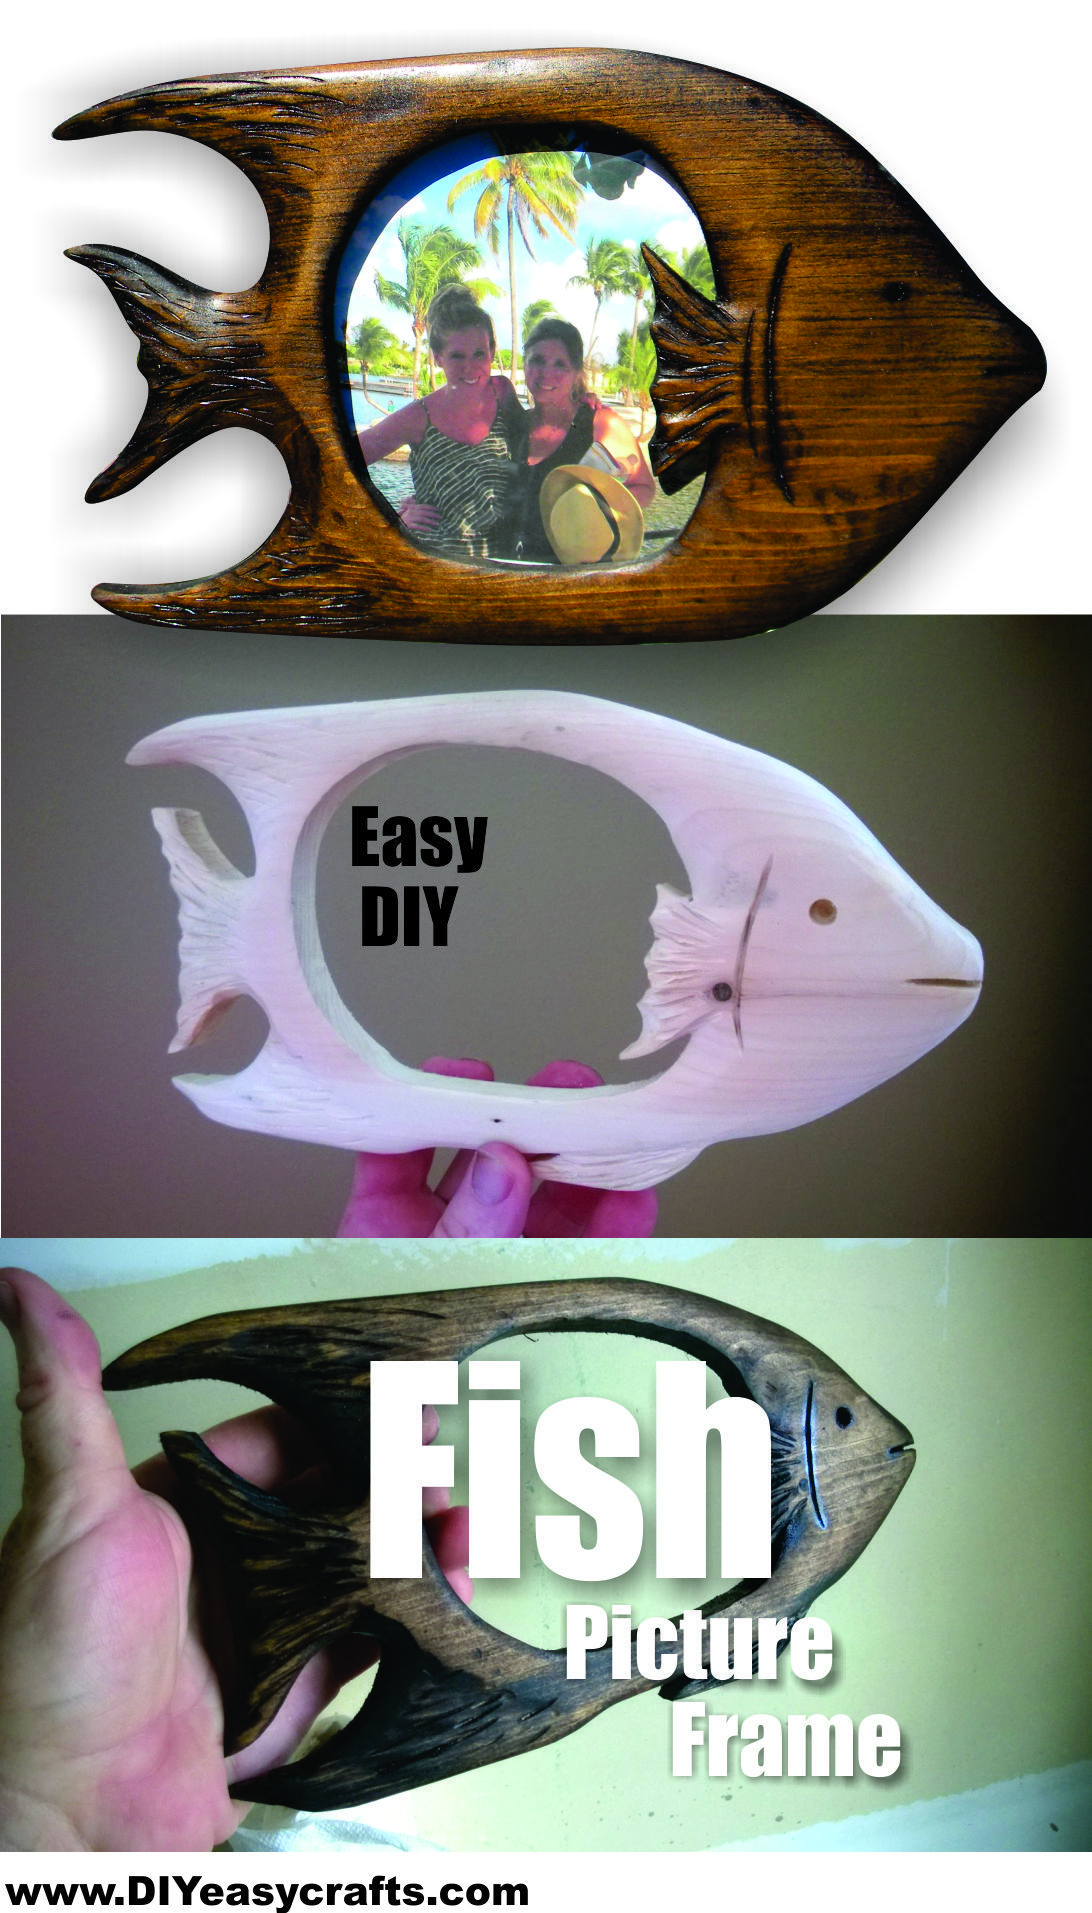 How to easily make a diy tropical fish shaped picture frame easy how to easily make a diy tropical fish shaped picture frame easy wood working craft diyeasycrafts solutioingenieria Image collections